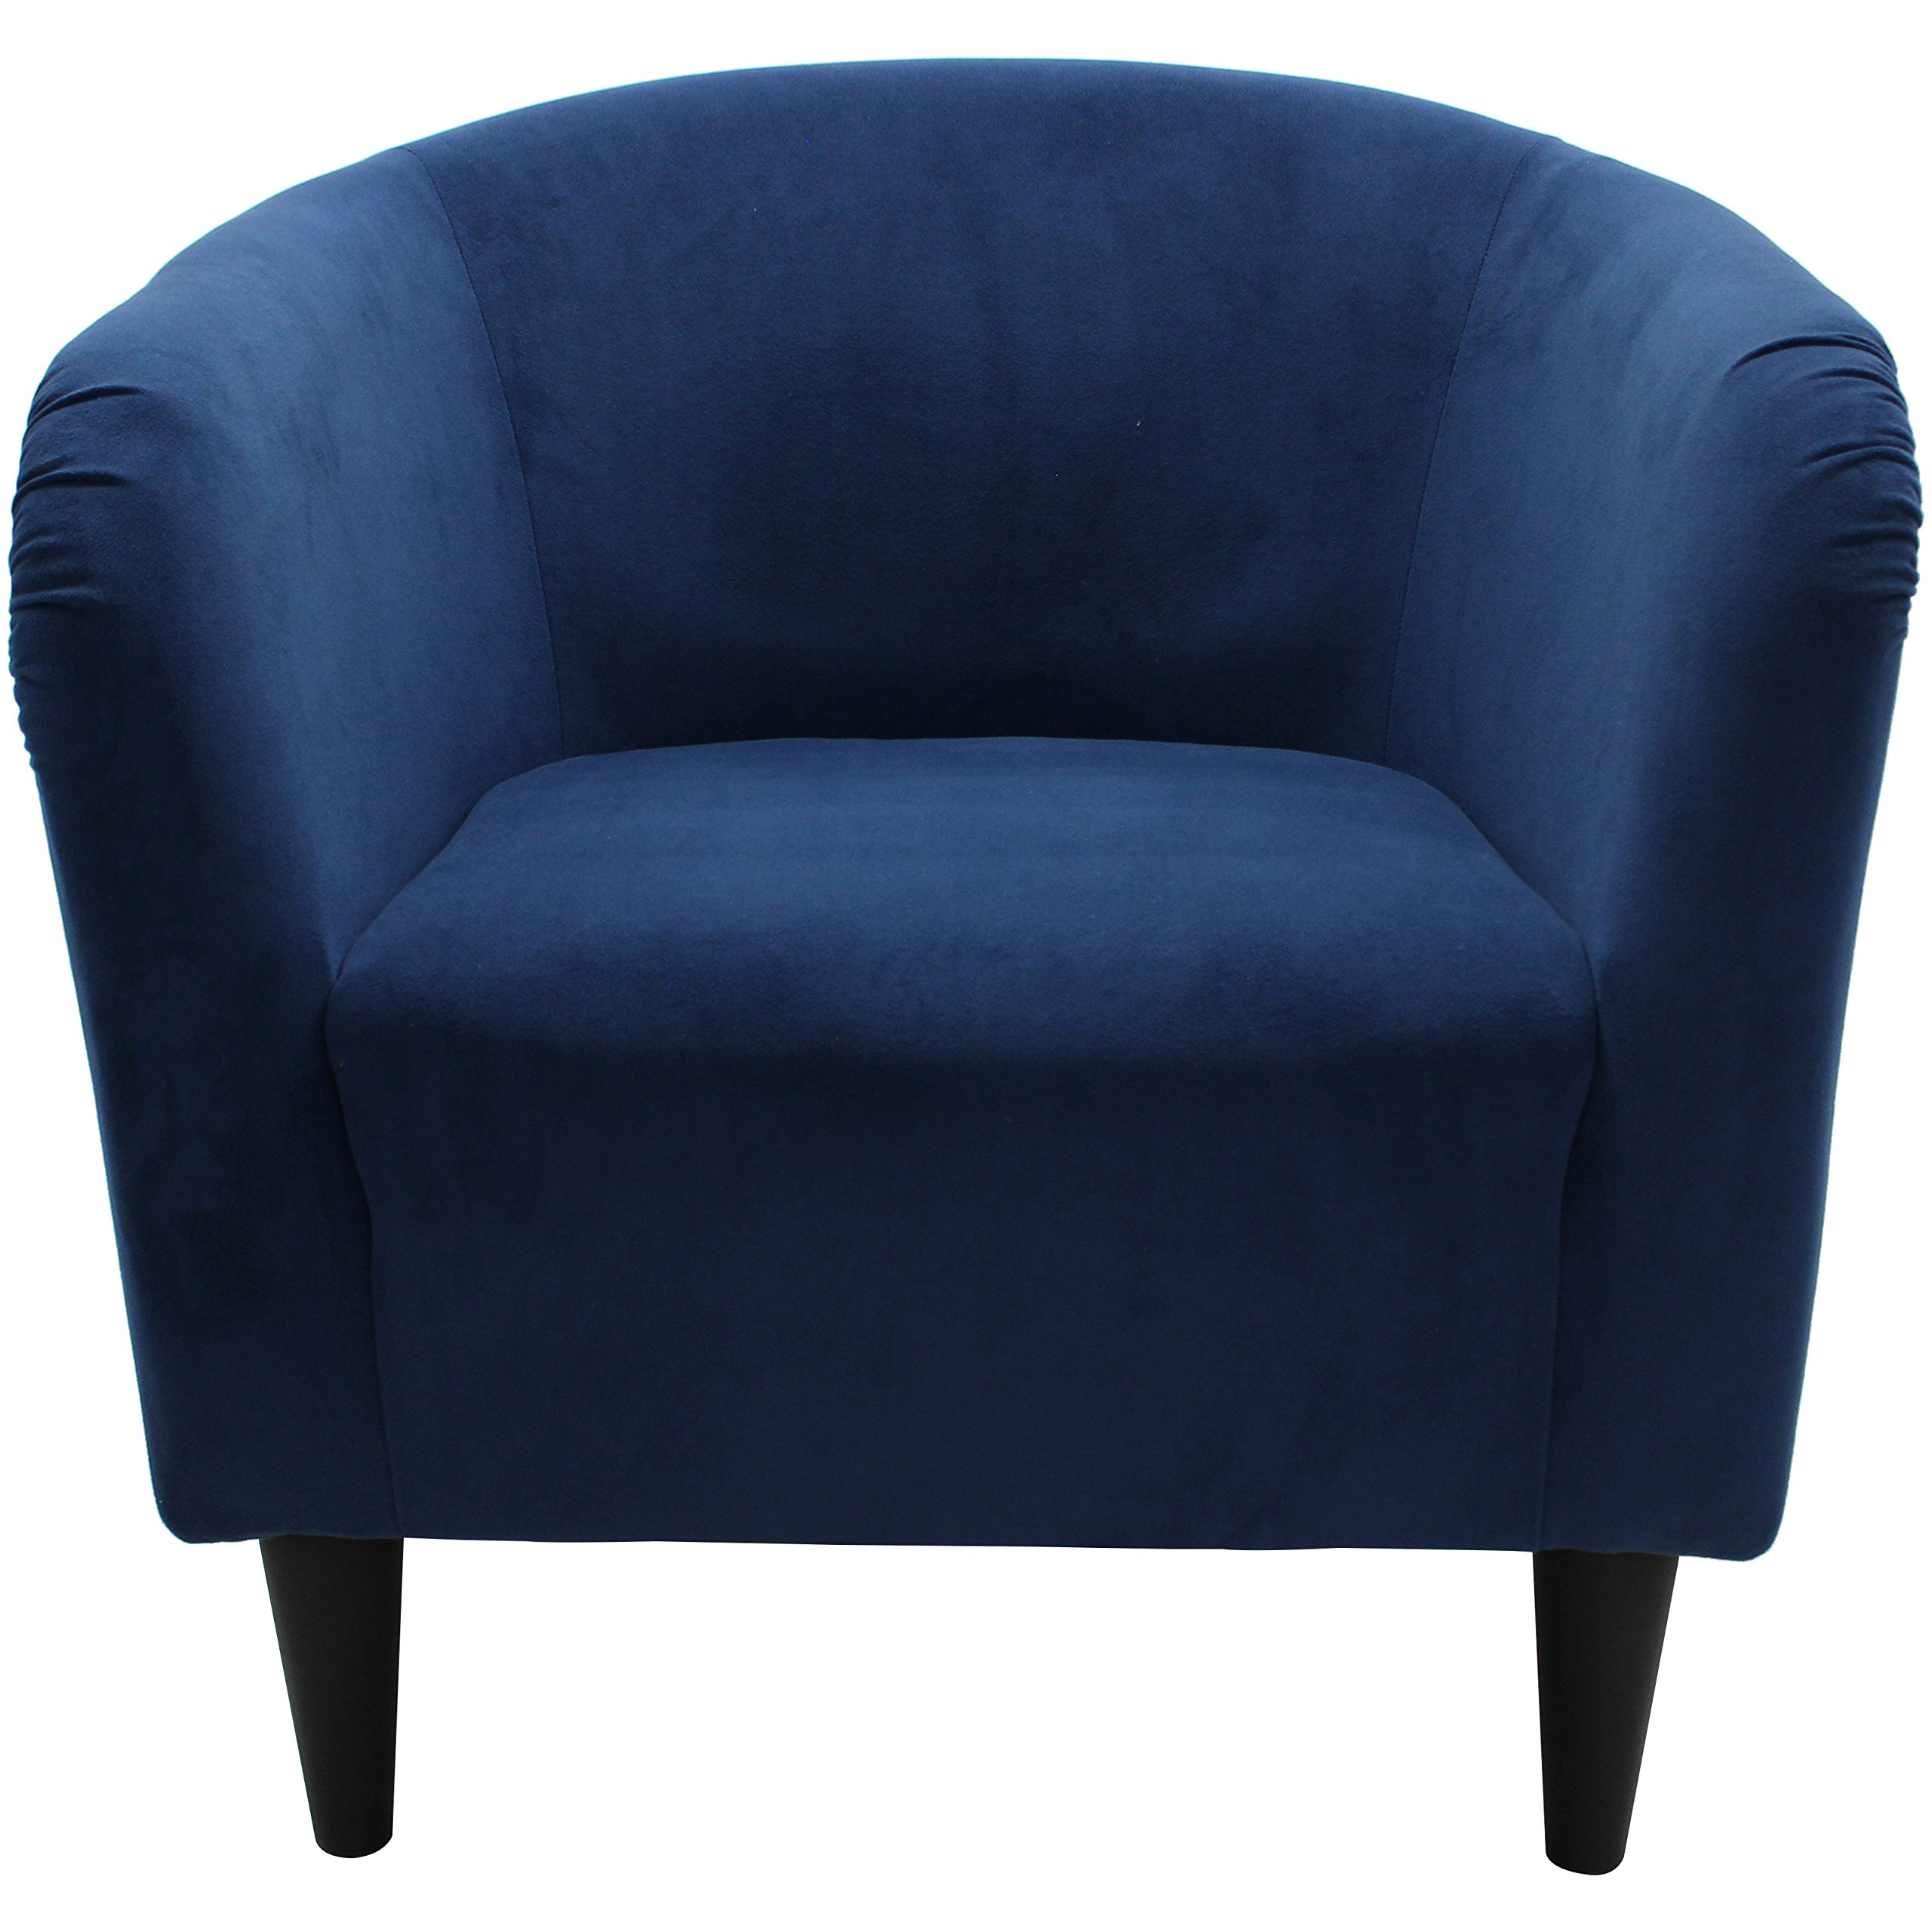 Mainstays Microfiber Tub Accent Chair (Navy Blue) by Mainstay (Image #5)